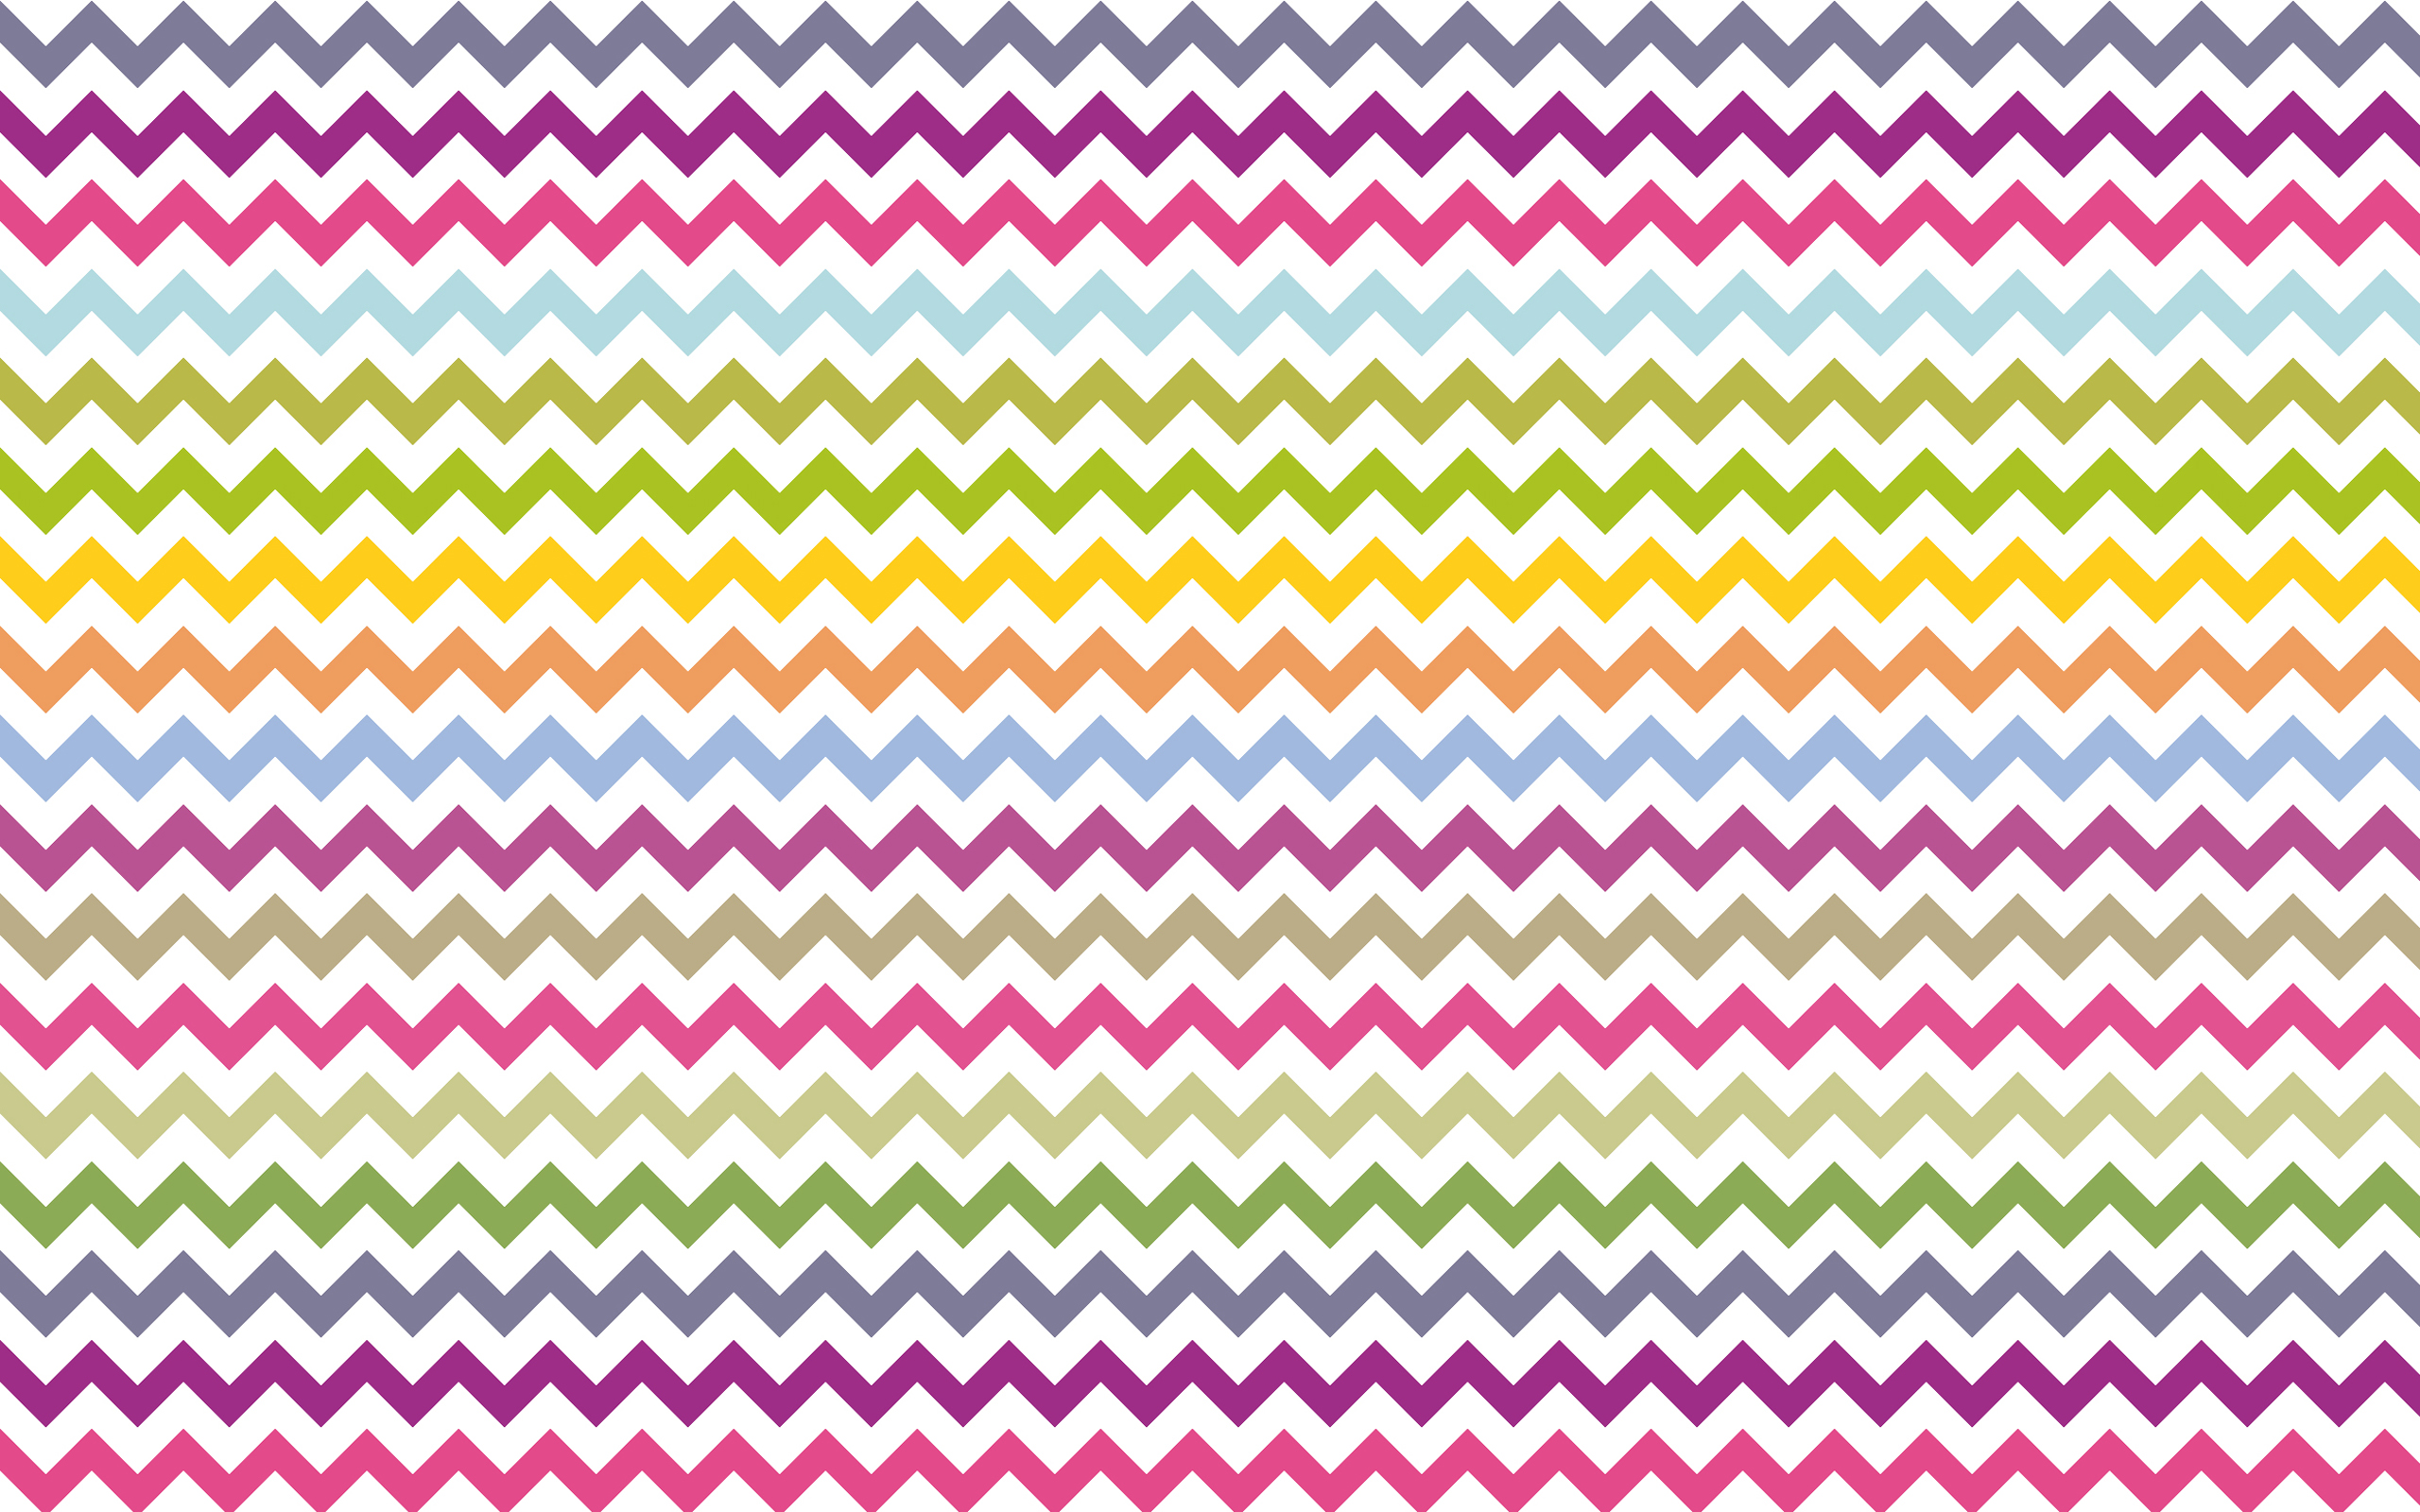 chevron 2 560 1 600 pixels happy pins